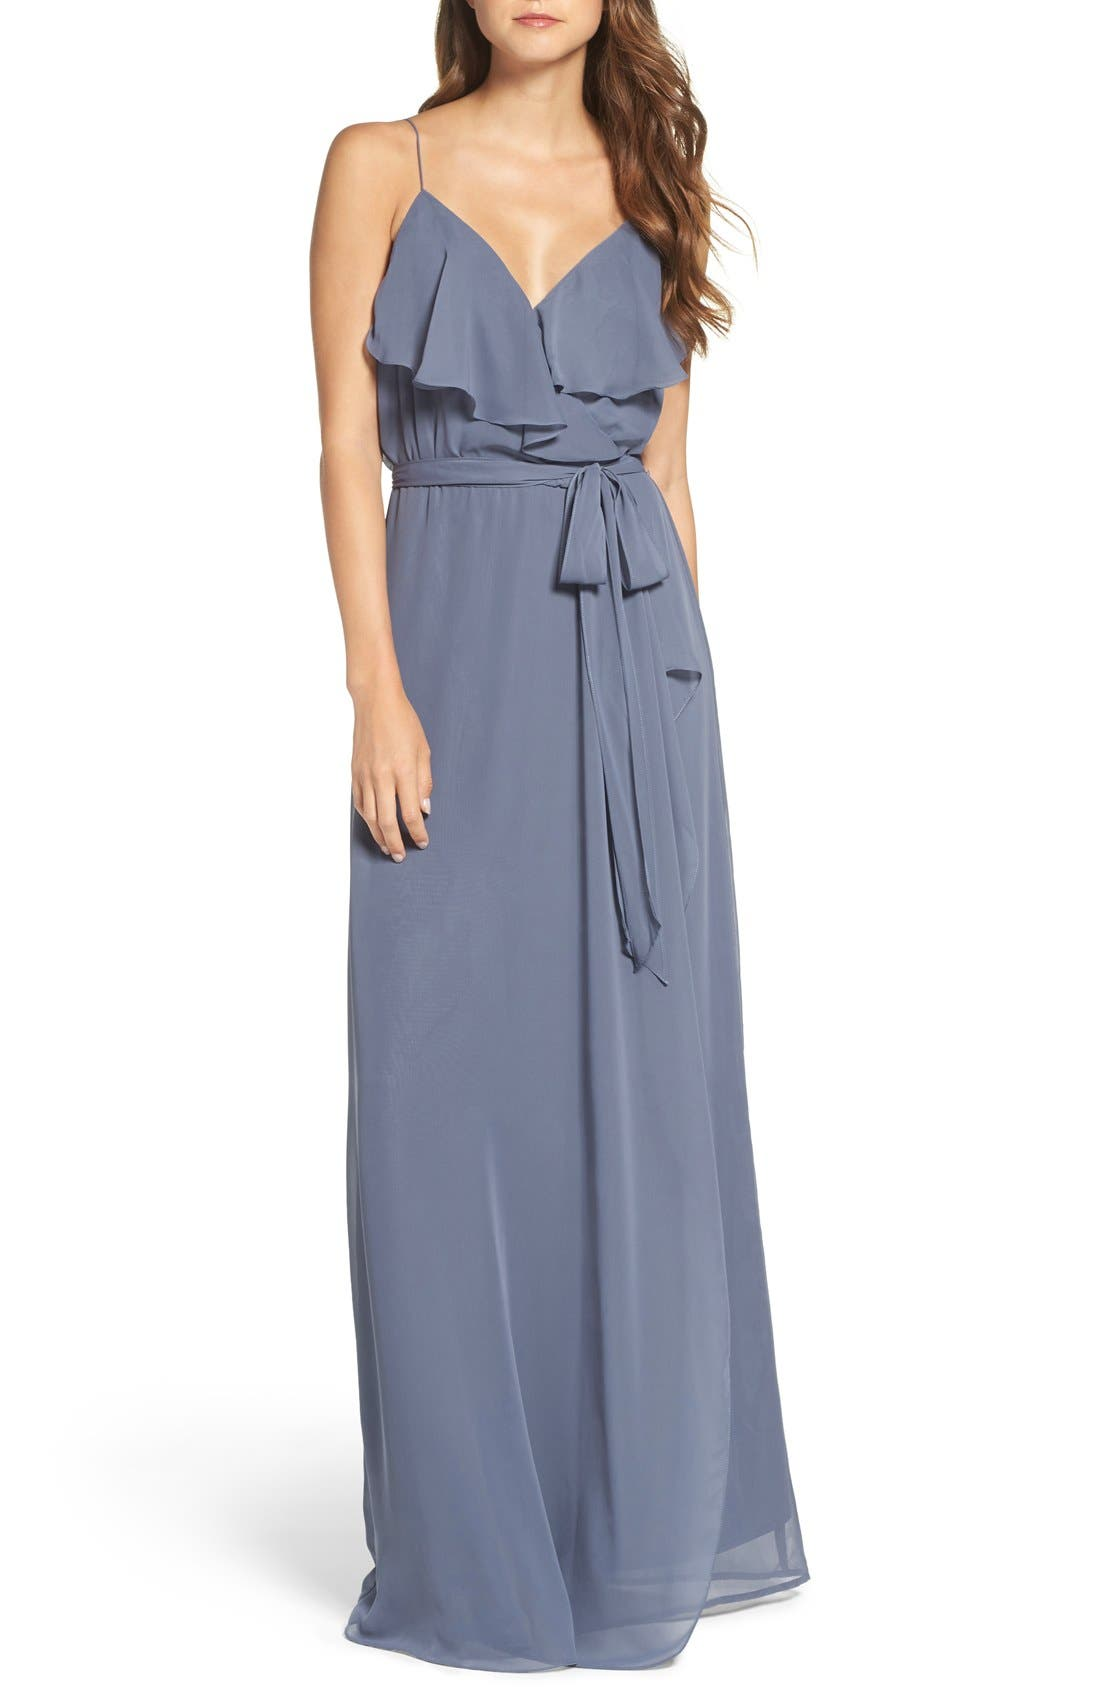 'Drew' Ruffle Front Chiffon Gown,                         Main,                         color, Blue Steel